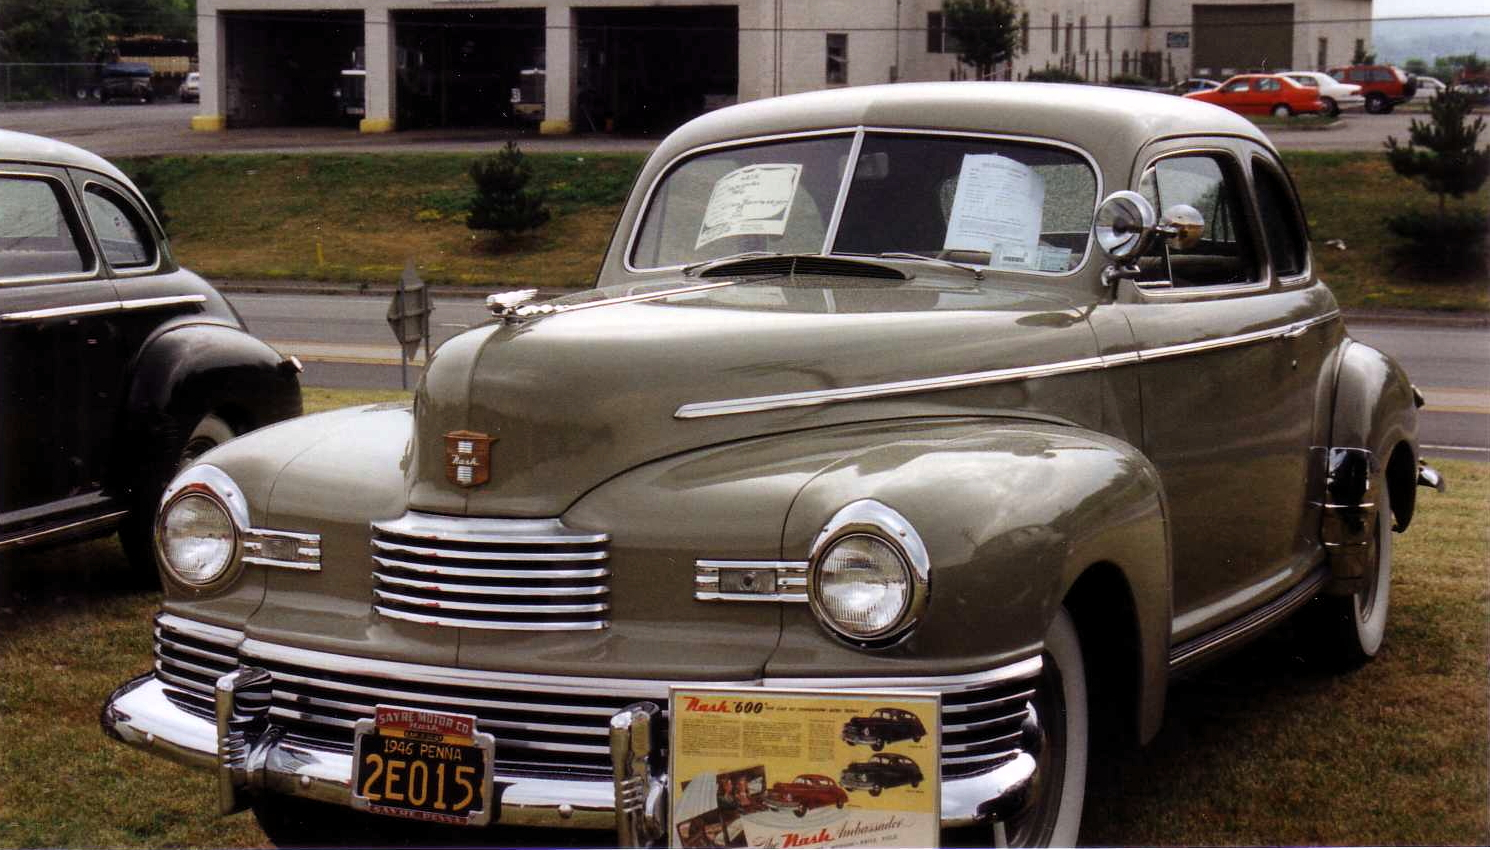 Nash 600 Wikipedia 1941 Mercury 4 Door Sedan